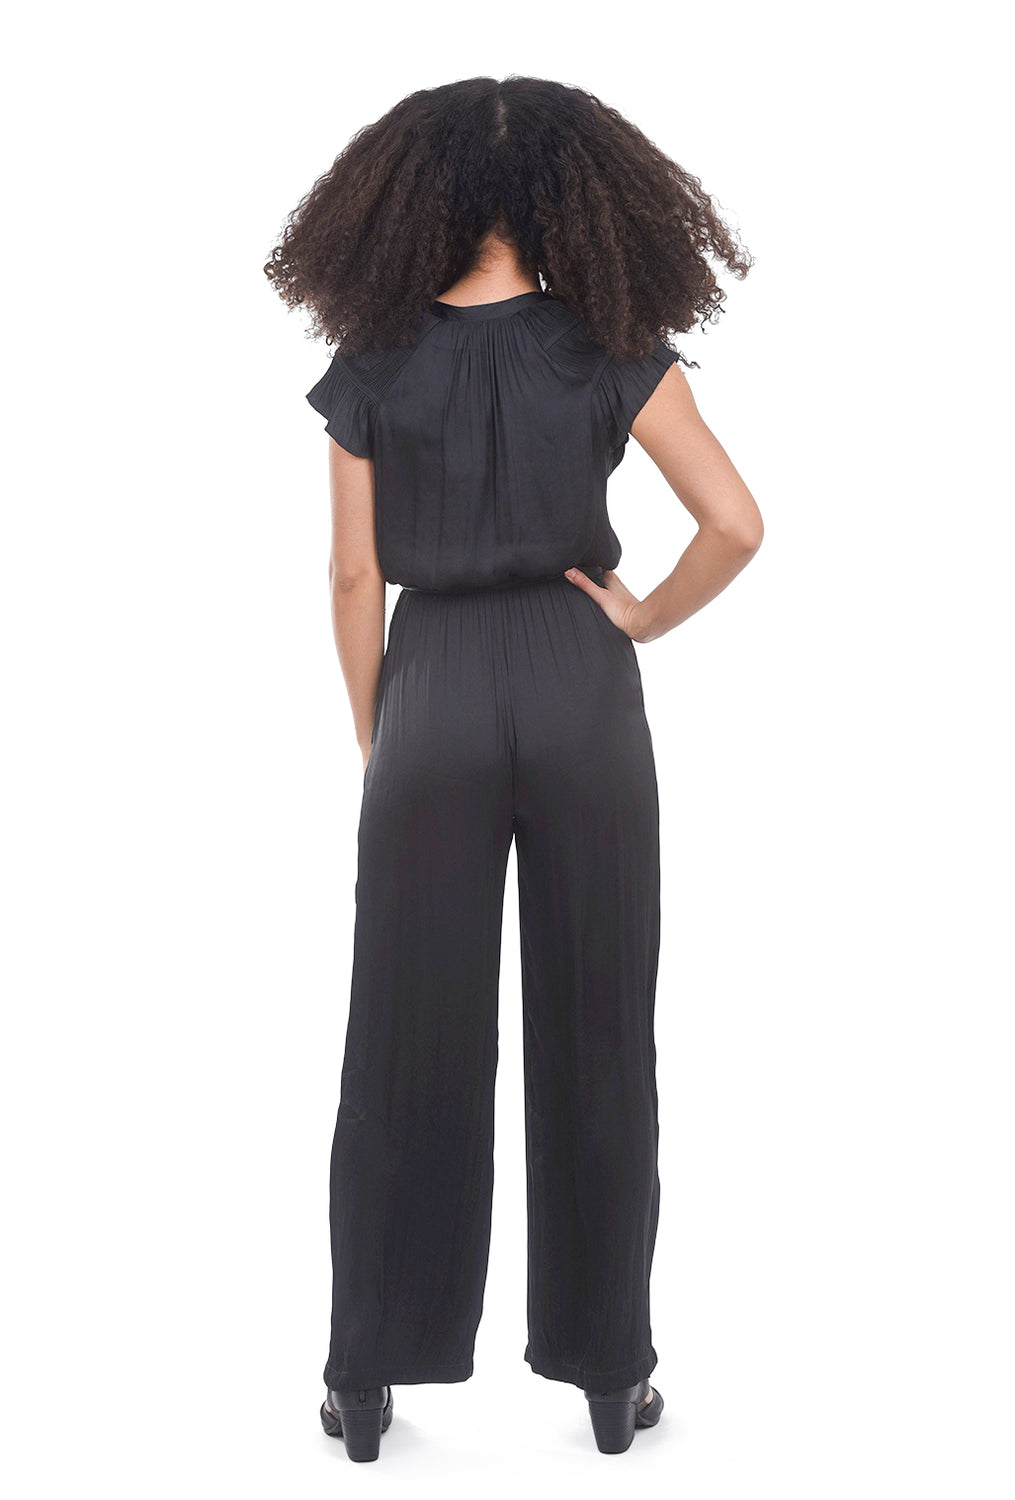 Current Air Victorian Jumpsuit, Black